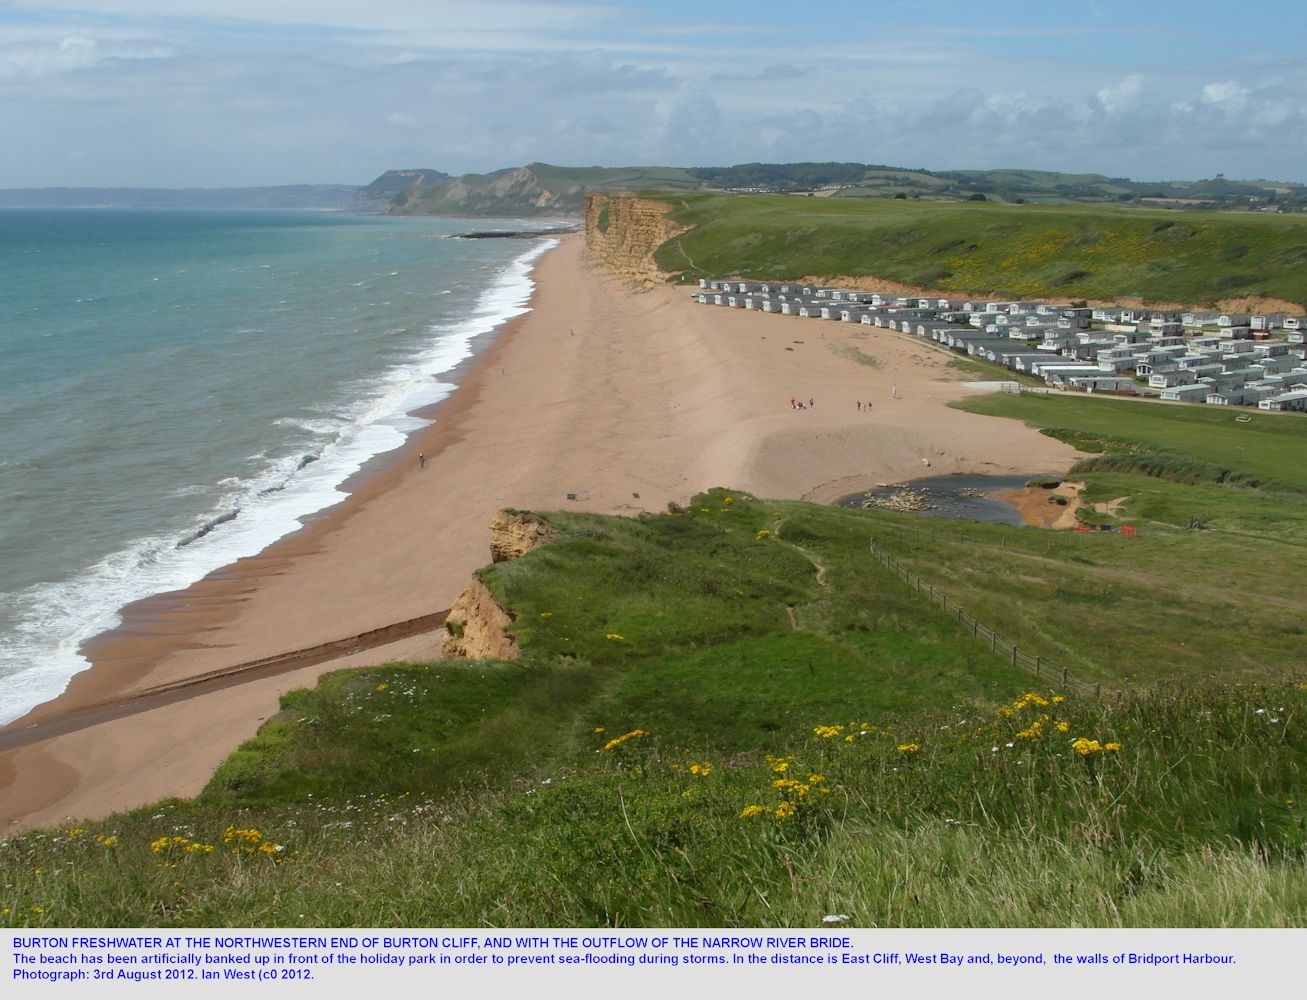 A general view of Burton Freshwater from the northwestern end of Burton Cliff, Burton Bradstock, Dorset, on 3rd August 2012